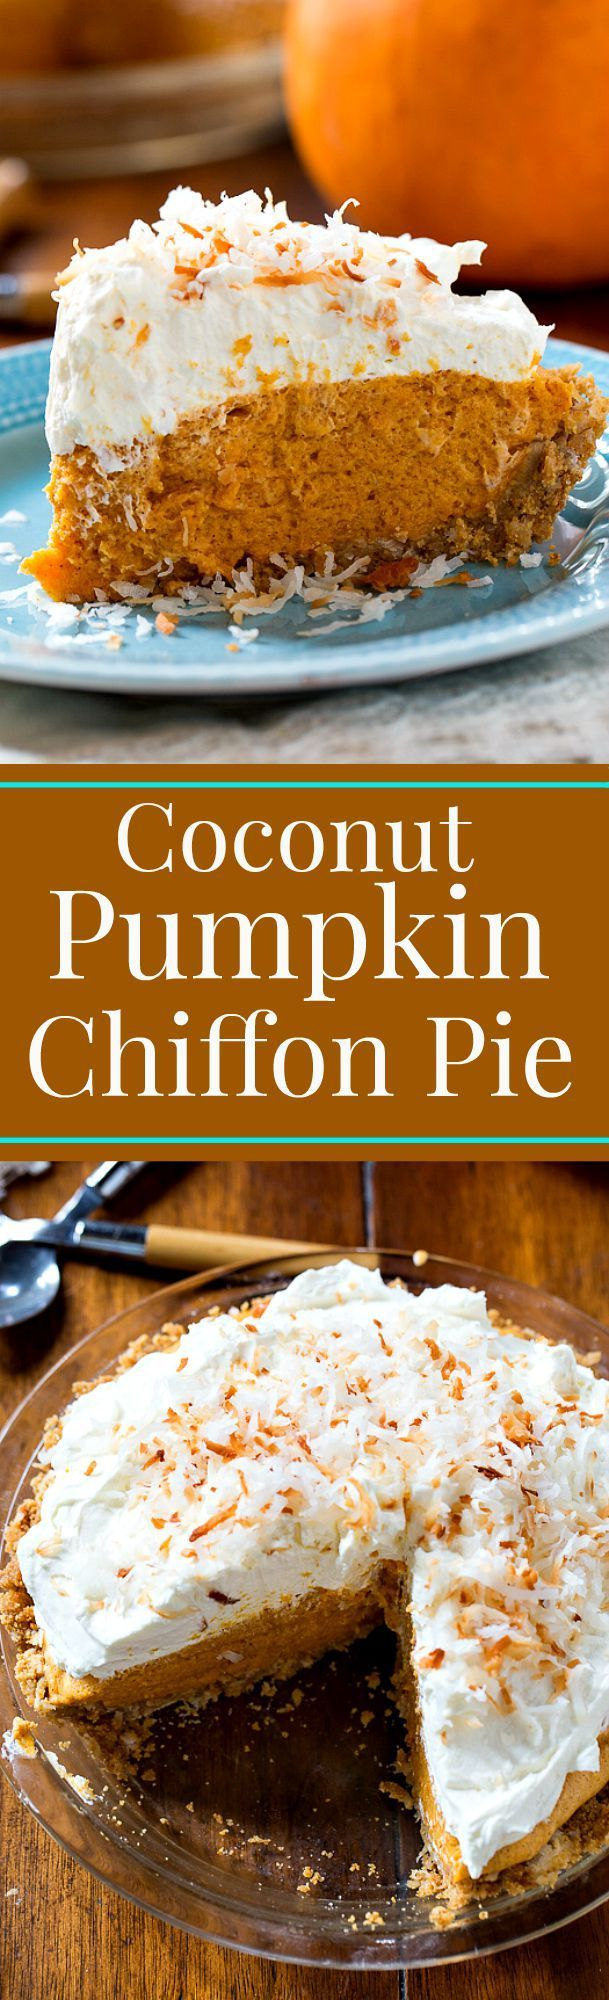 Coconut Pumpkin Chiffon Pie - Served chilled and topped with a rich and decadent mascarpone whipped cream is a welcome change from plain old pumpkin pie.